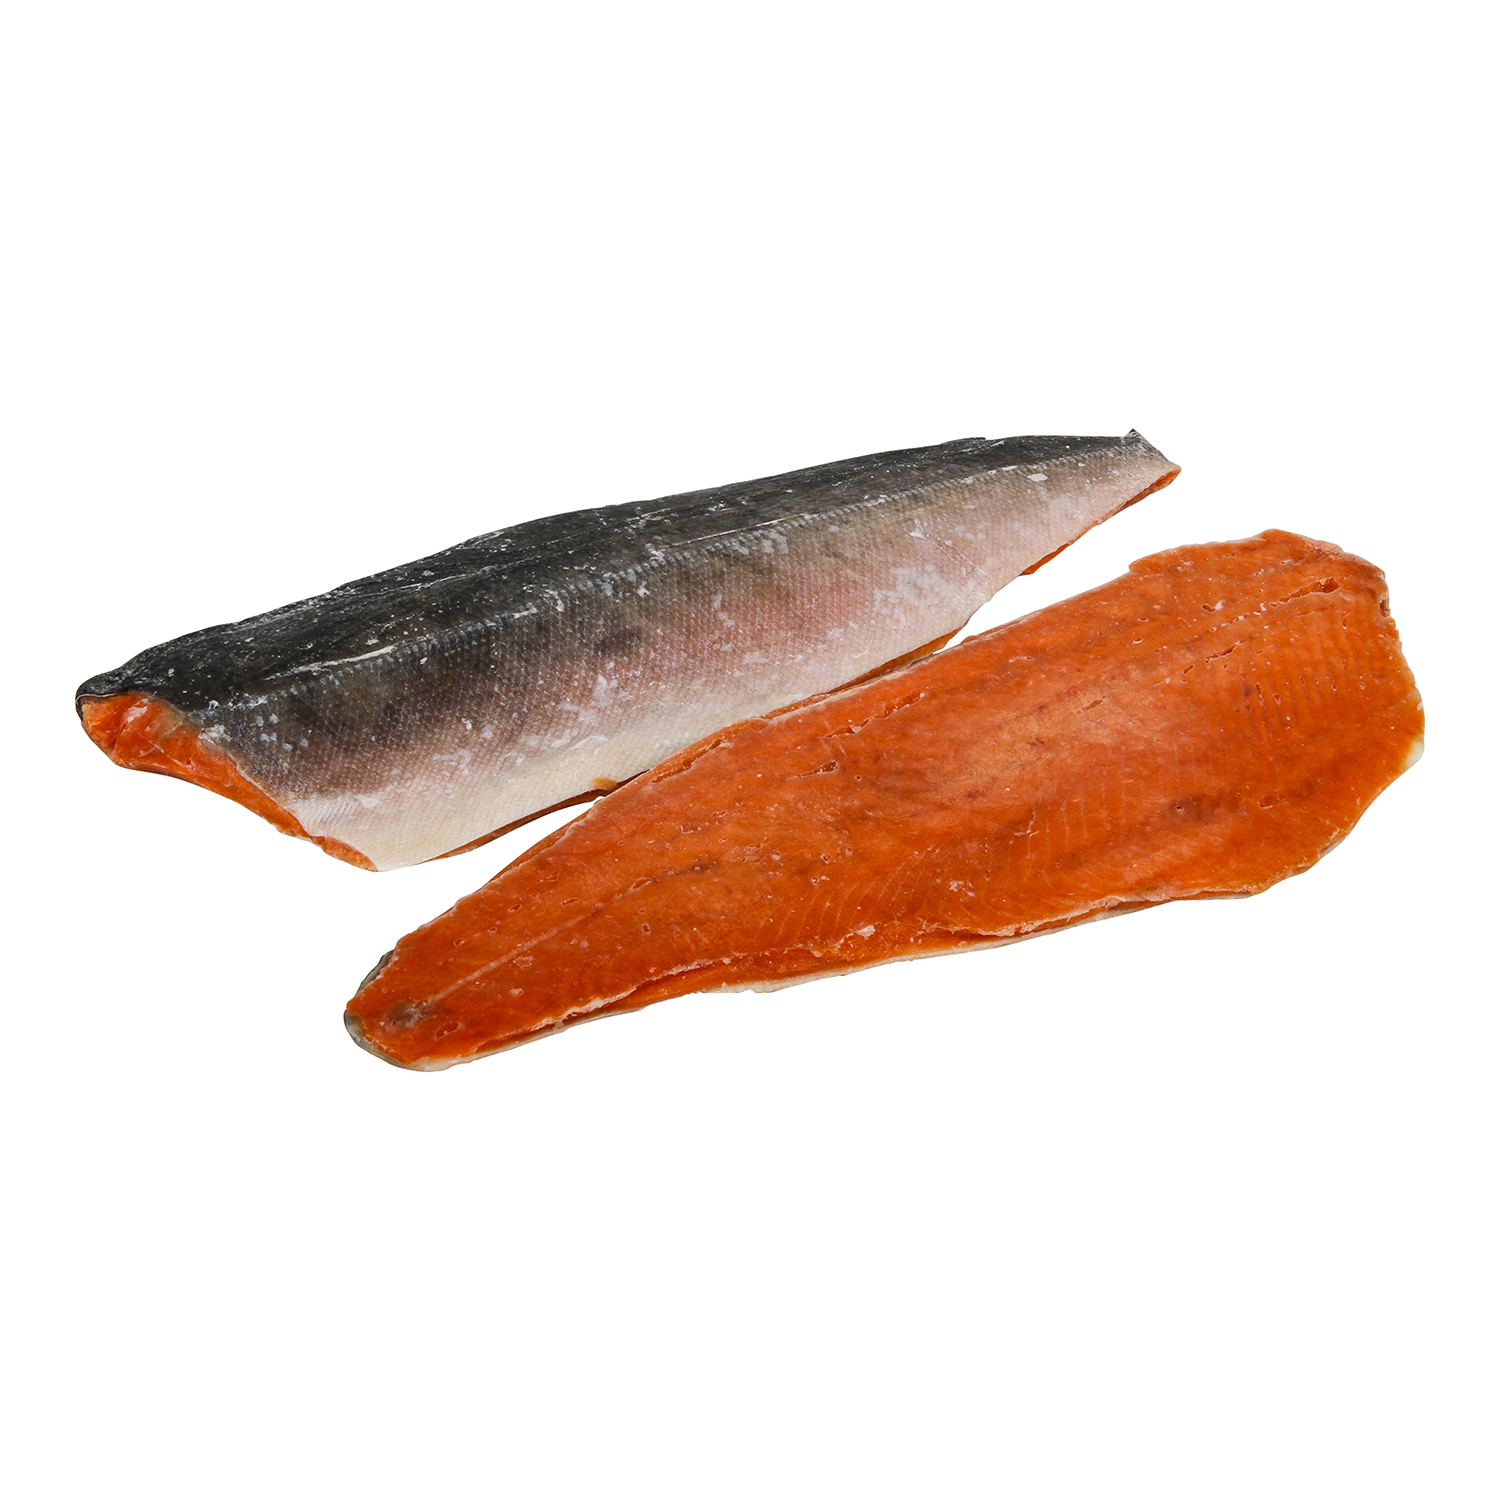 Coho Salmon Sides 1-3 lb Skin On, Pin Bone Out (1/20 lb) 475092